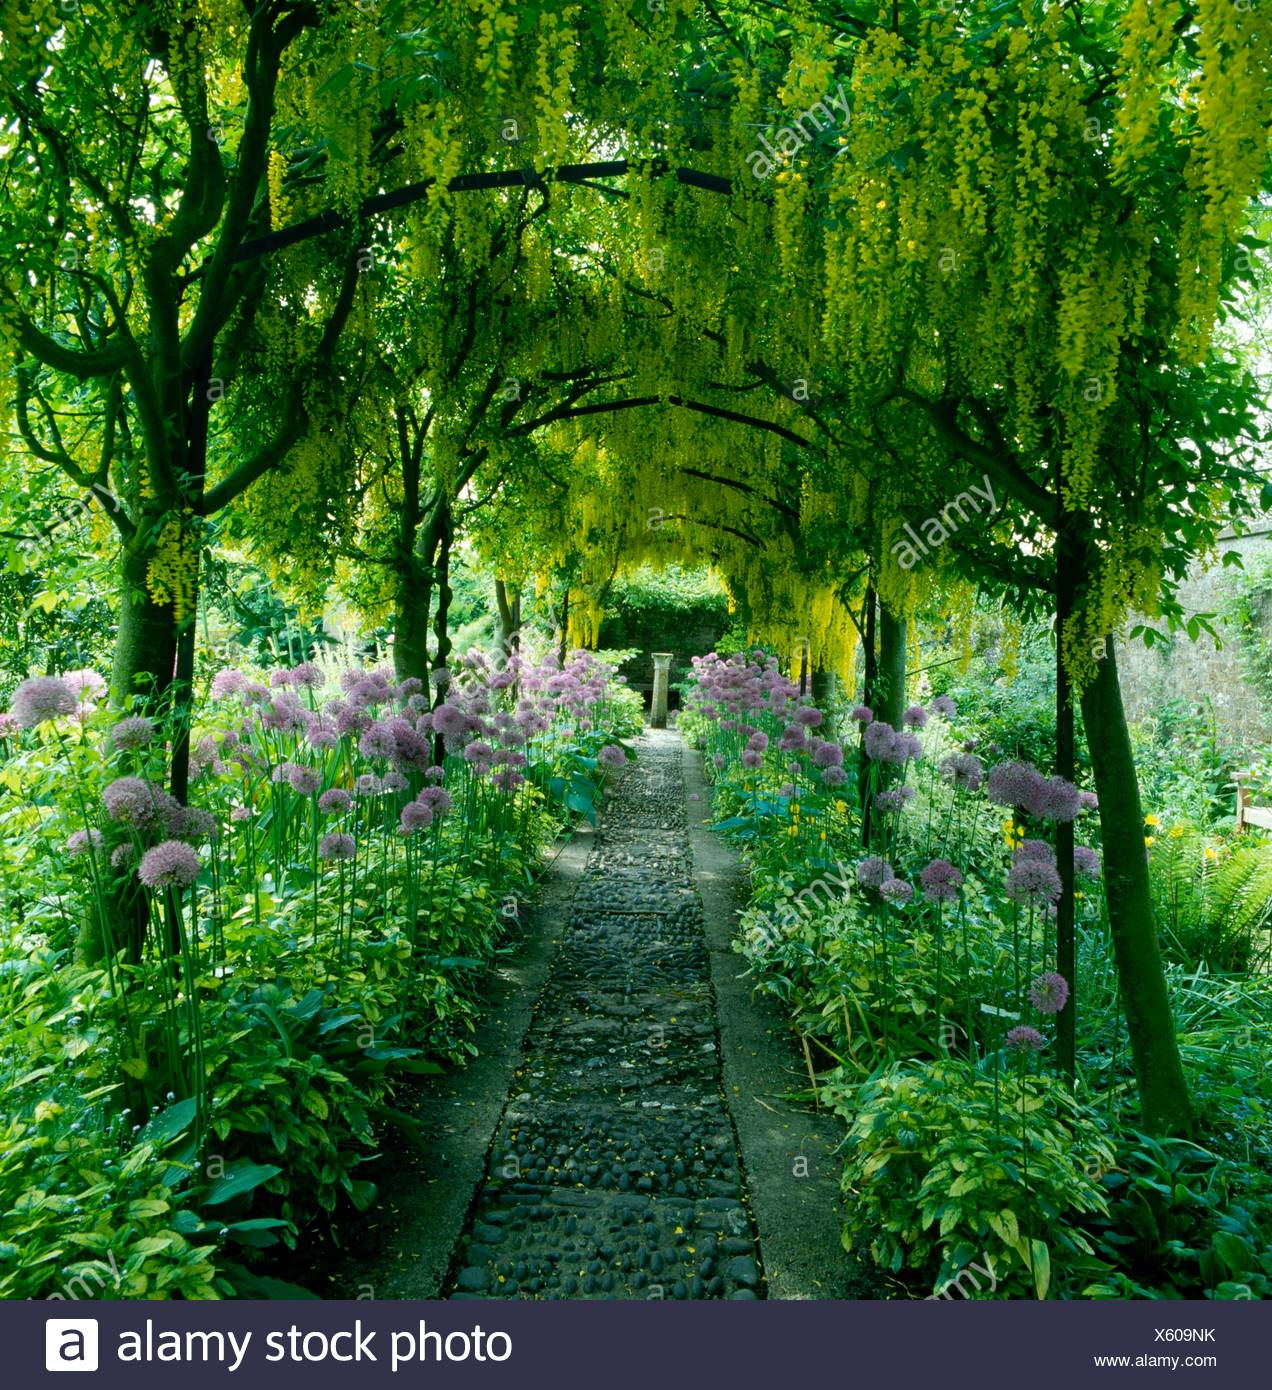 Archway - of Laburnum x watereri `Vossii' at Barnsley House. - - (Please credit: Photos Hort/designer Rosemary Verey)   Ref: PHS - Stock Image